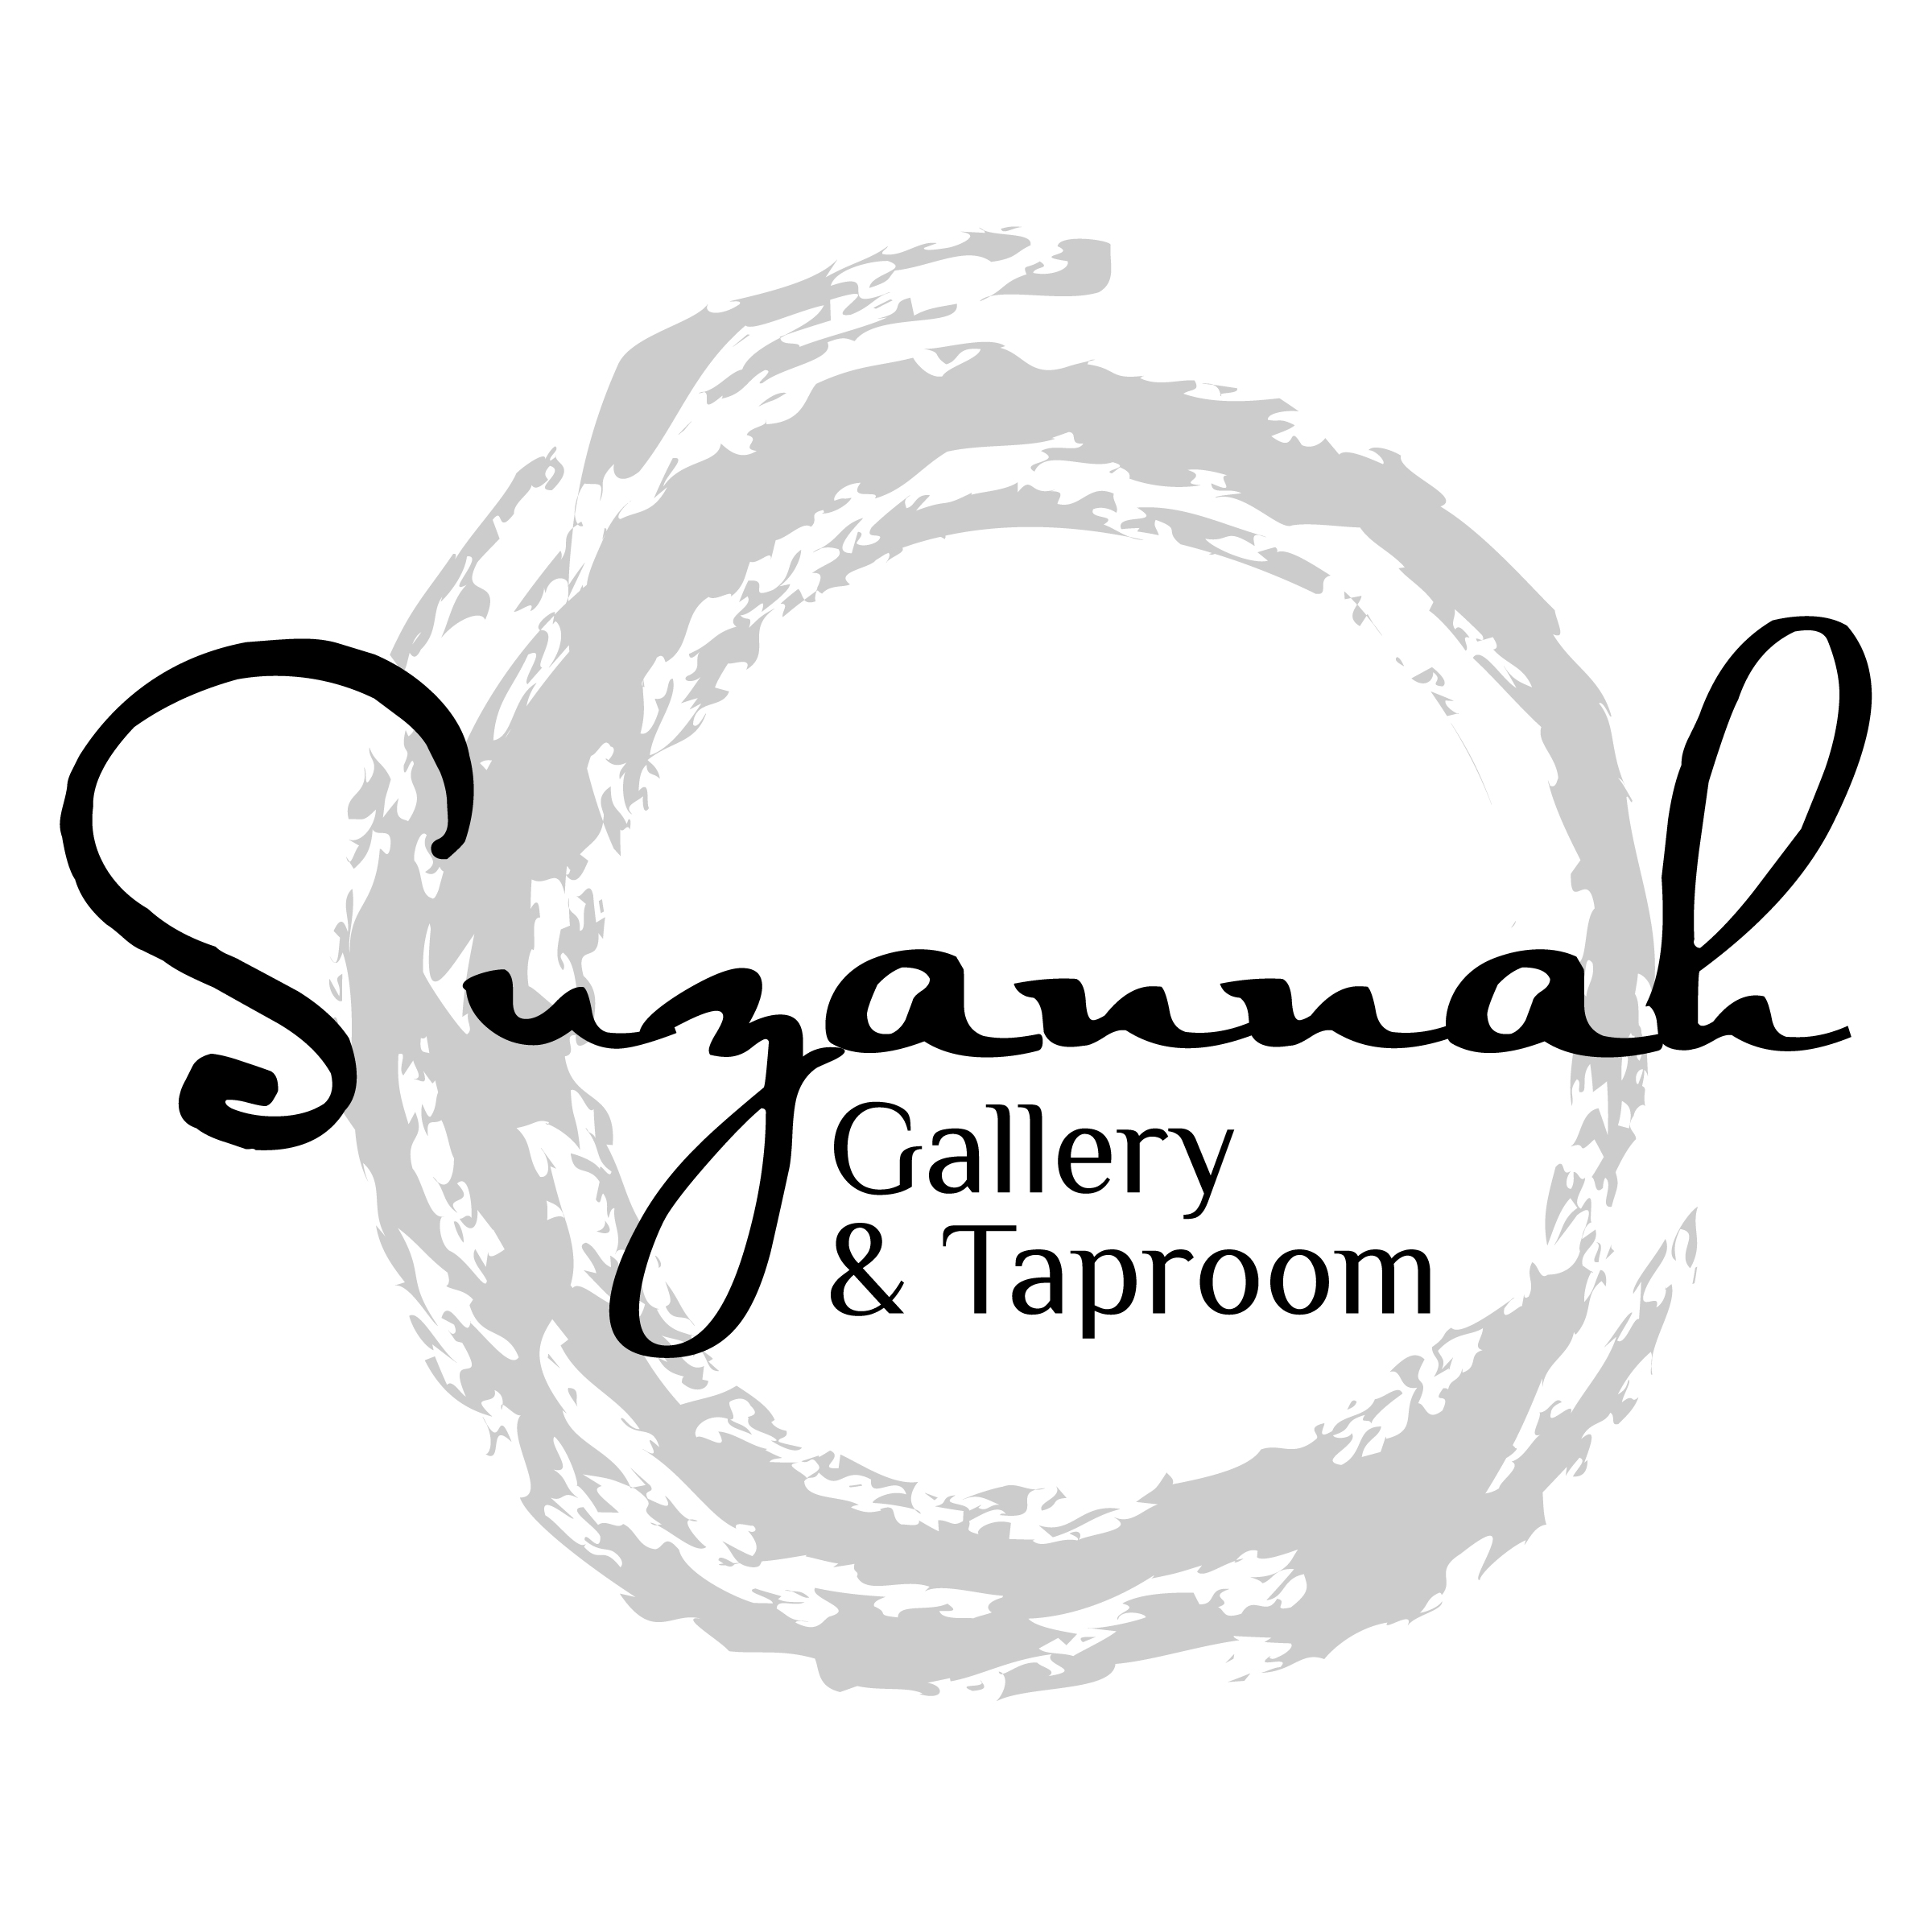 Suzannah Gallery & Taproom